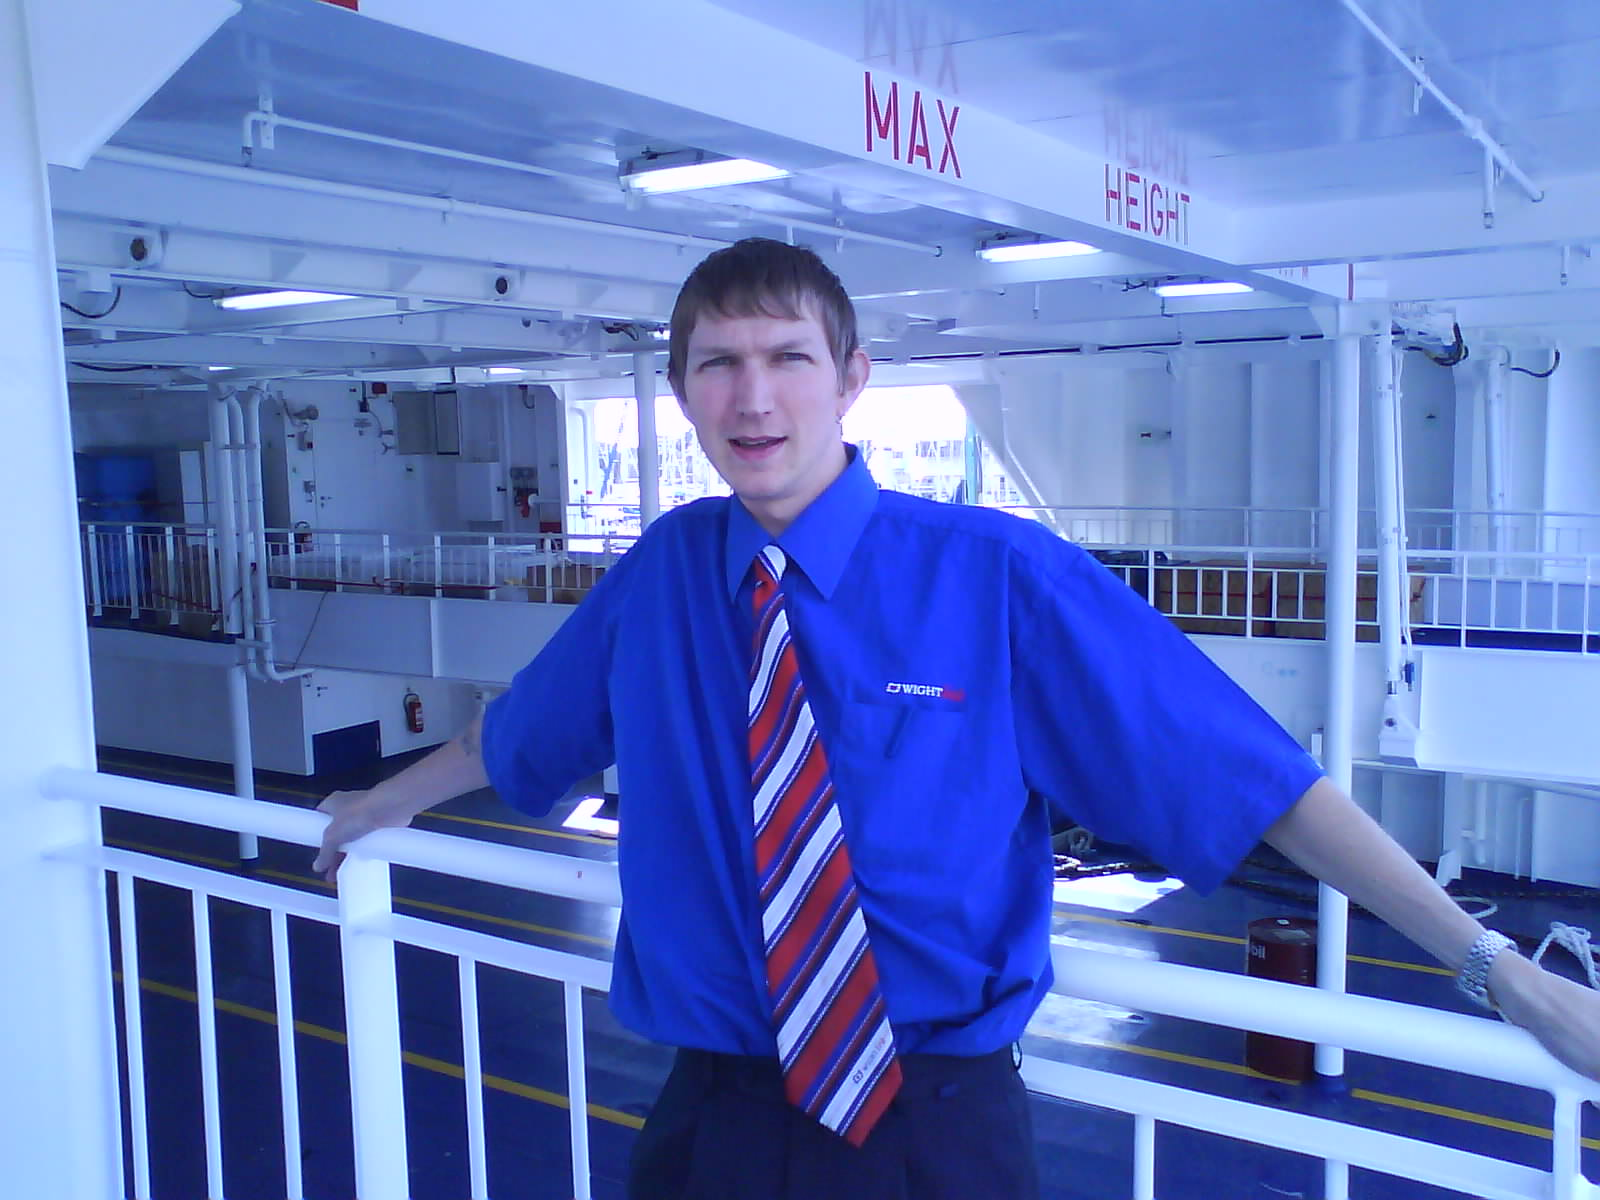 Jonny Blair working at Wightlink Isle of Wight England